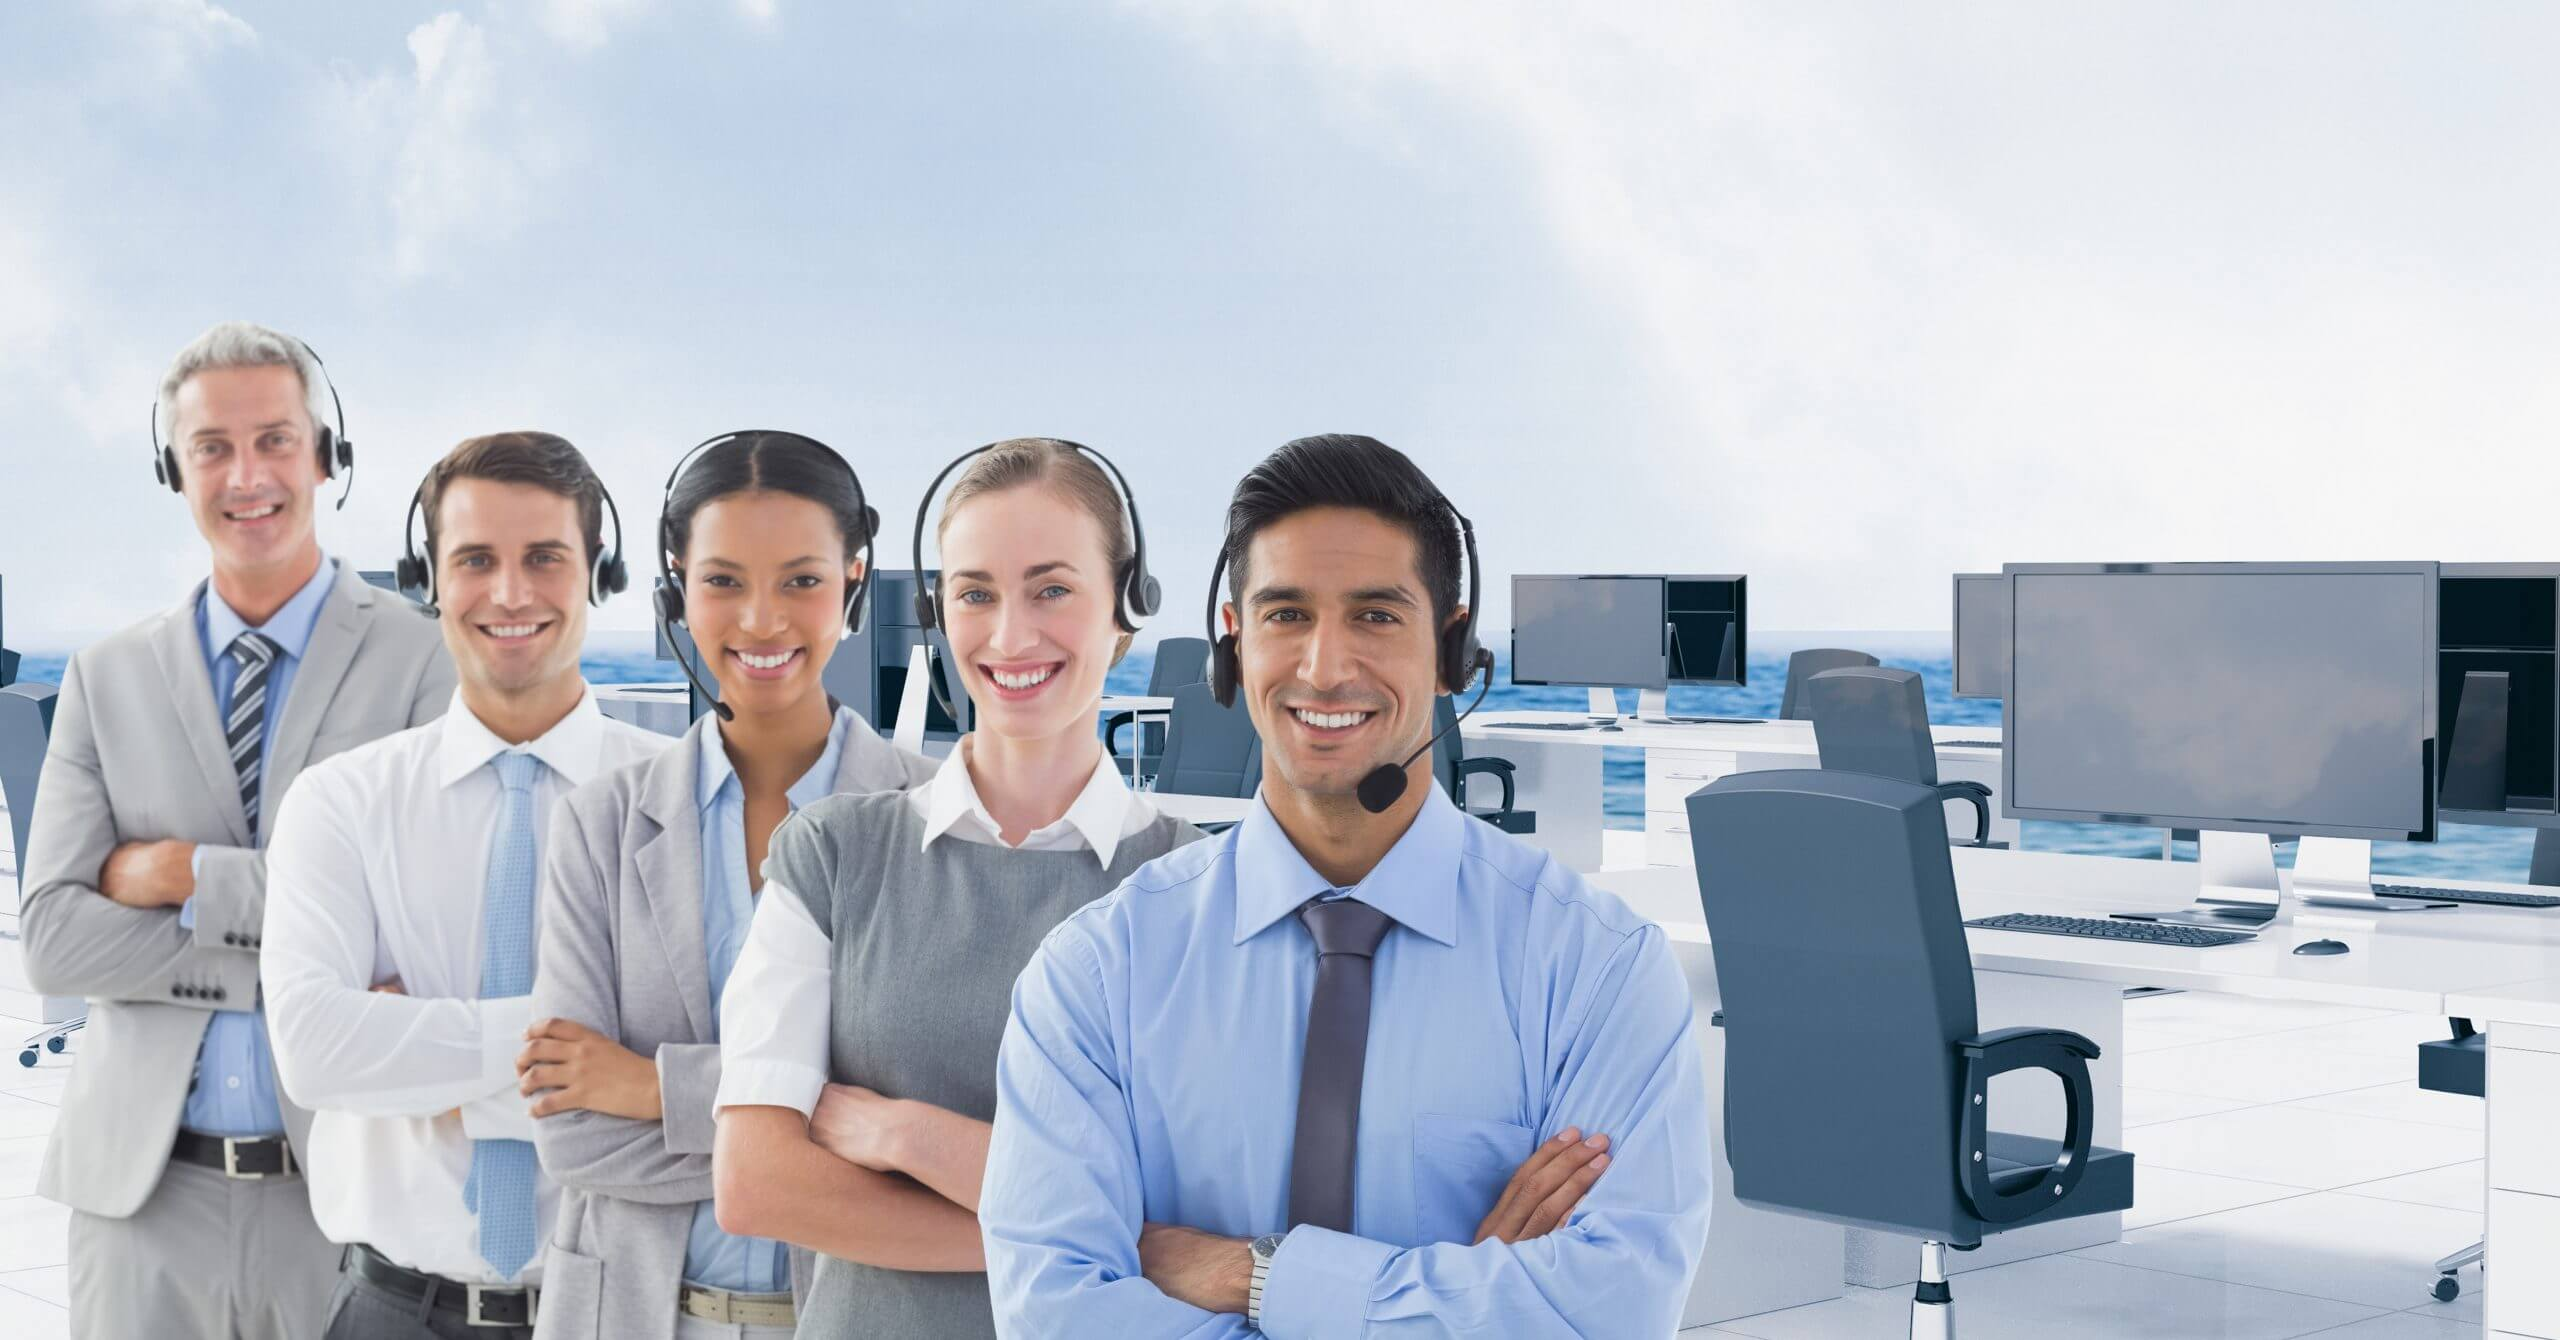 Working in a call center is not for everyone.